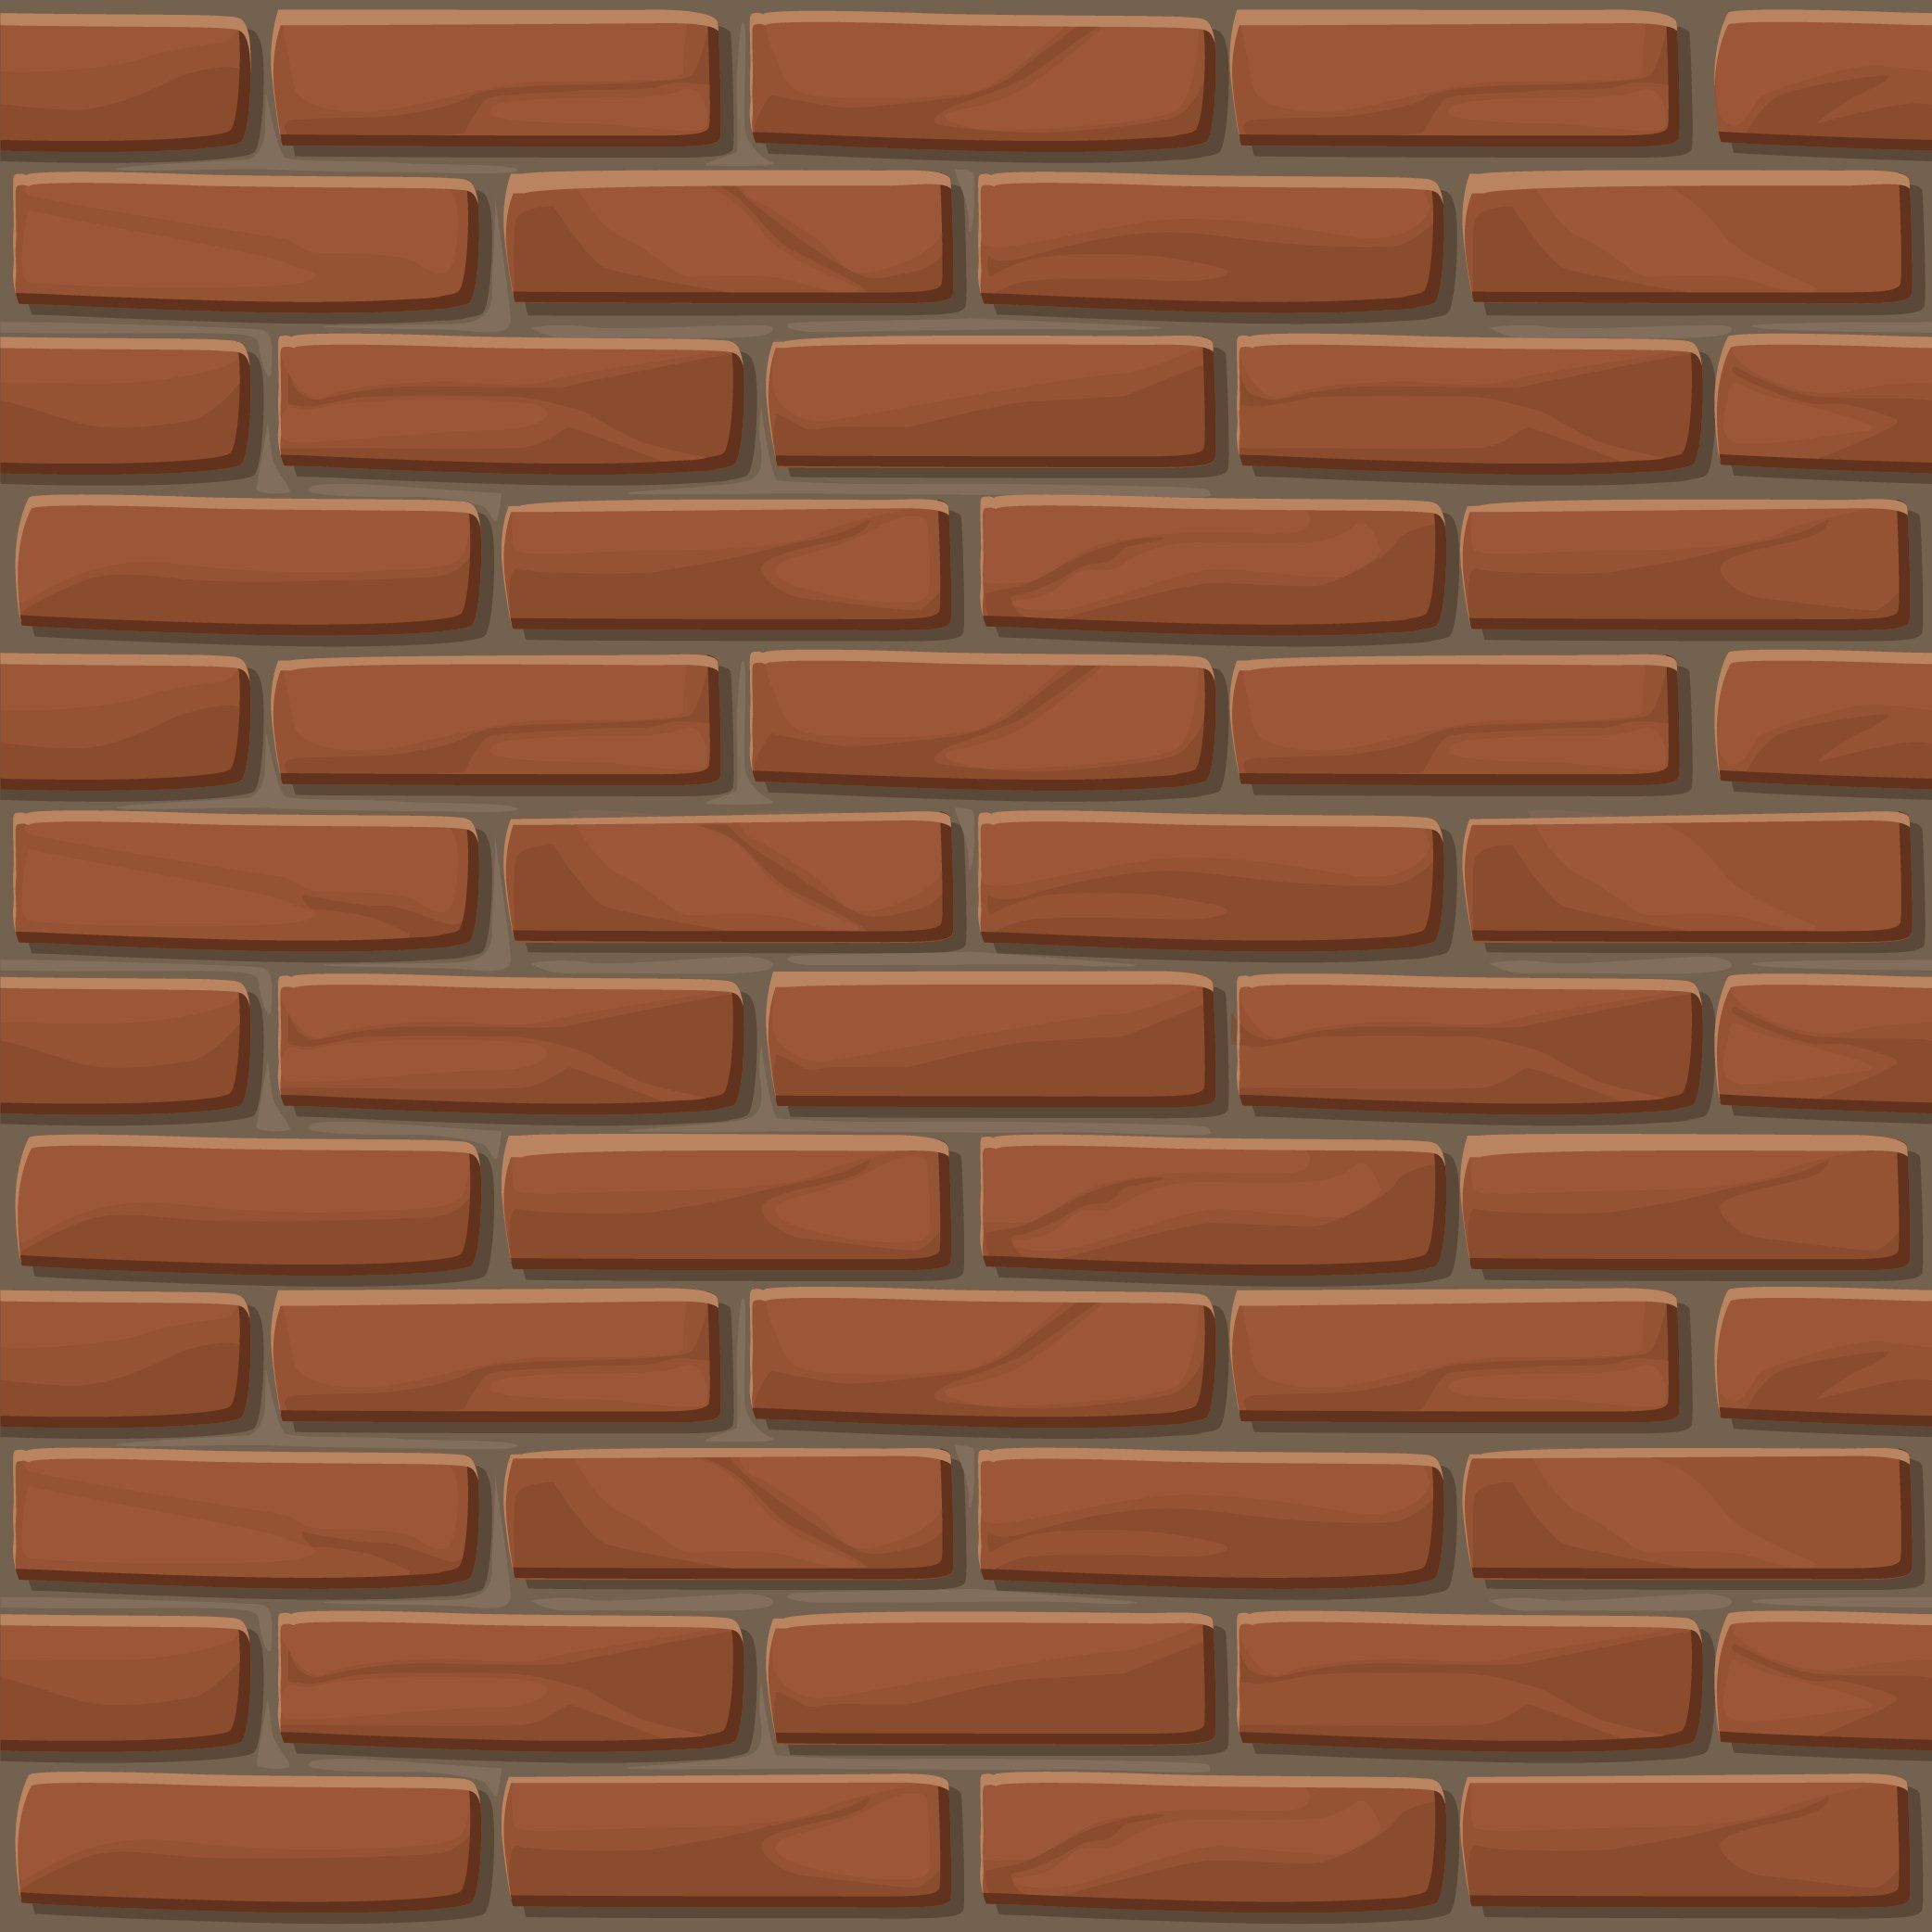 Set Brick Wall Texture Seamless In 2020 Textured Walls Brick Wall Brick Texture